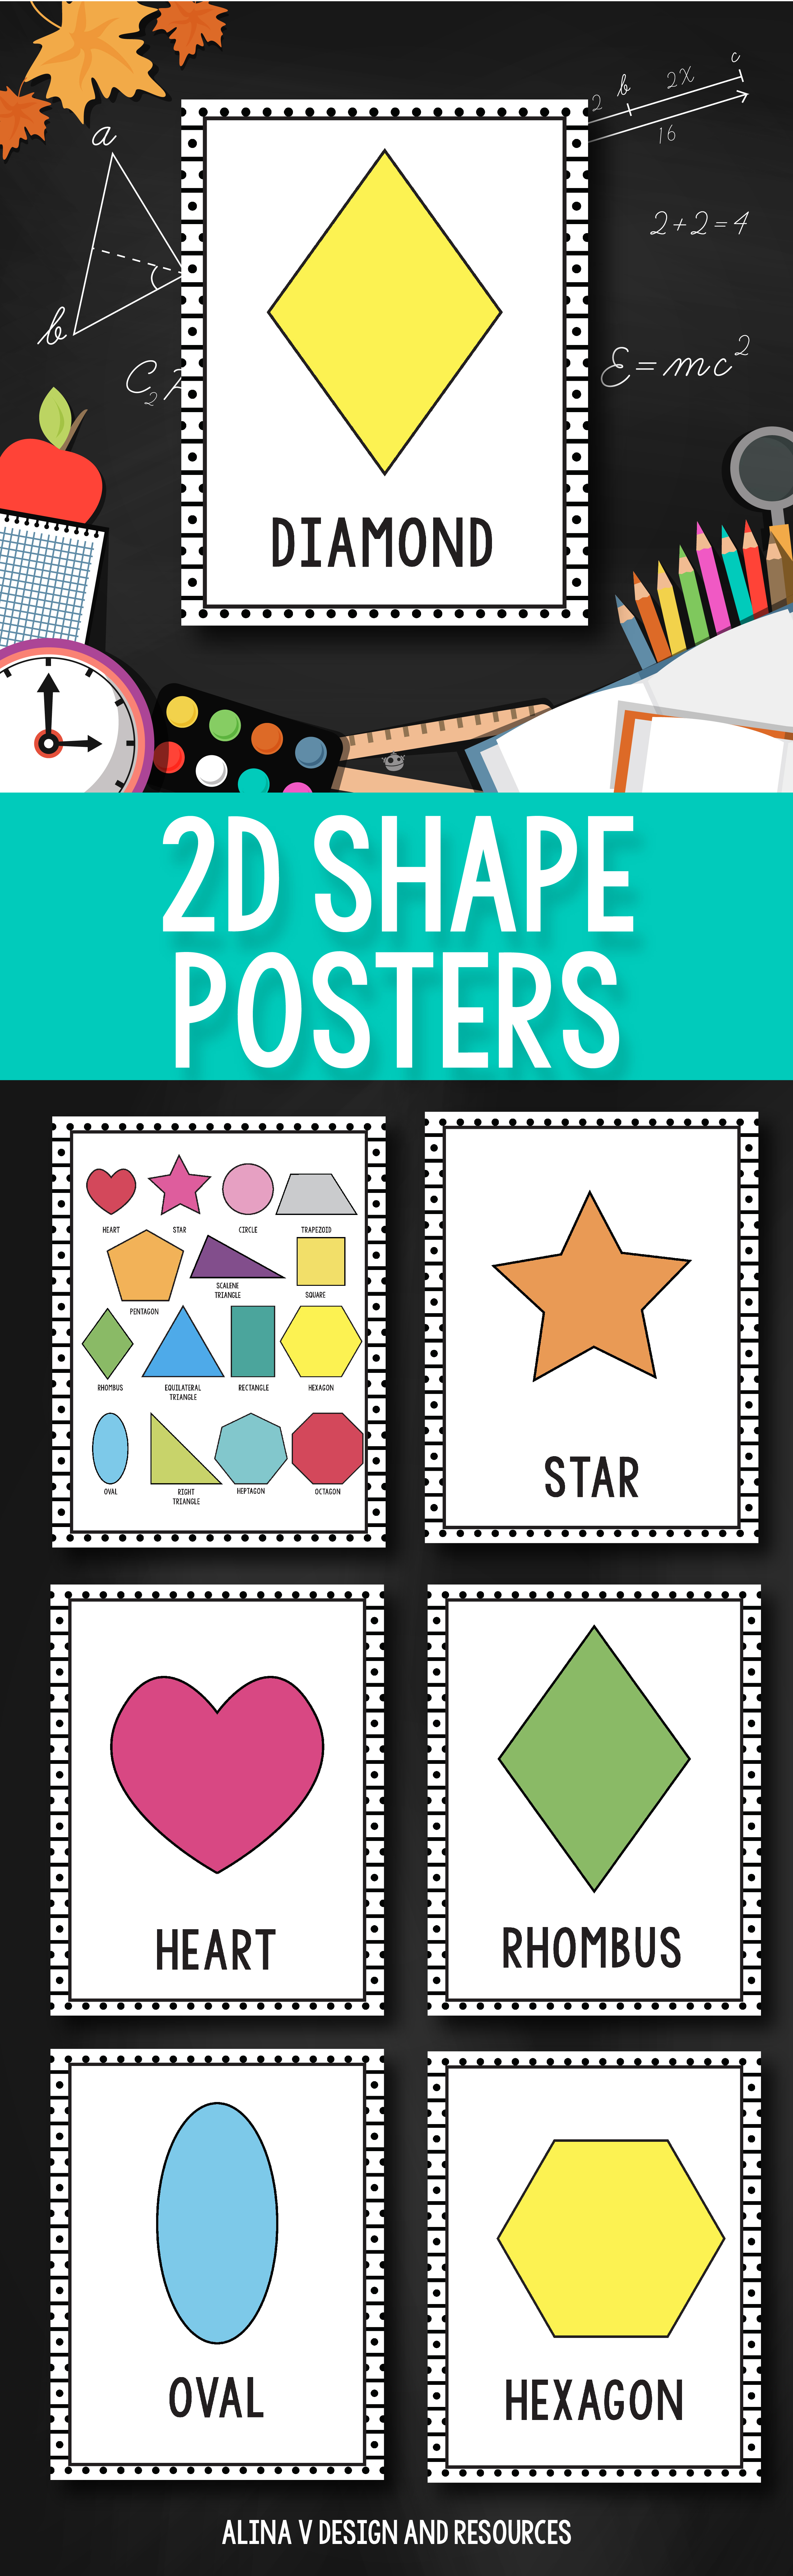 A beautifully designed and engaging Kindergarten lesson plan for